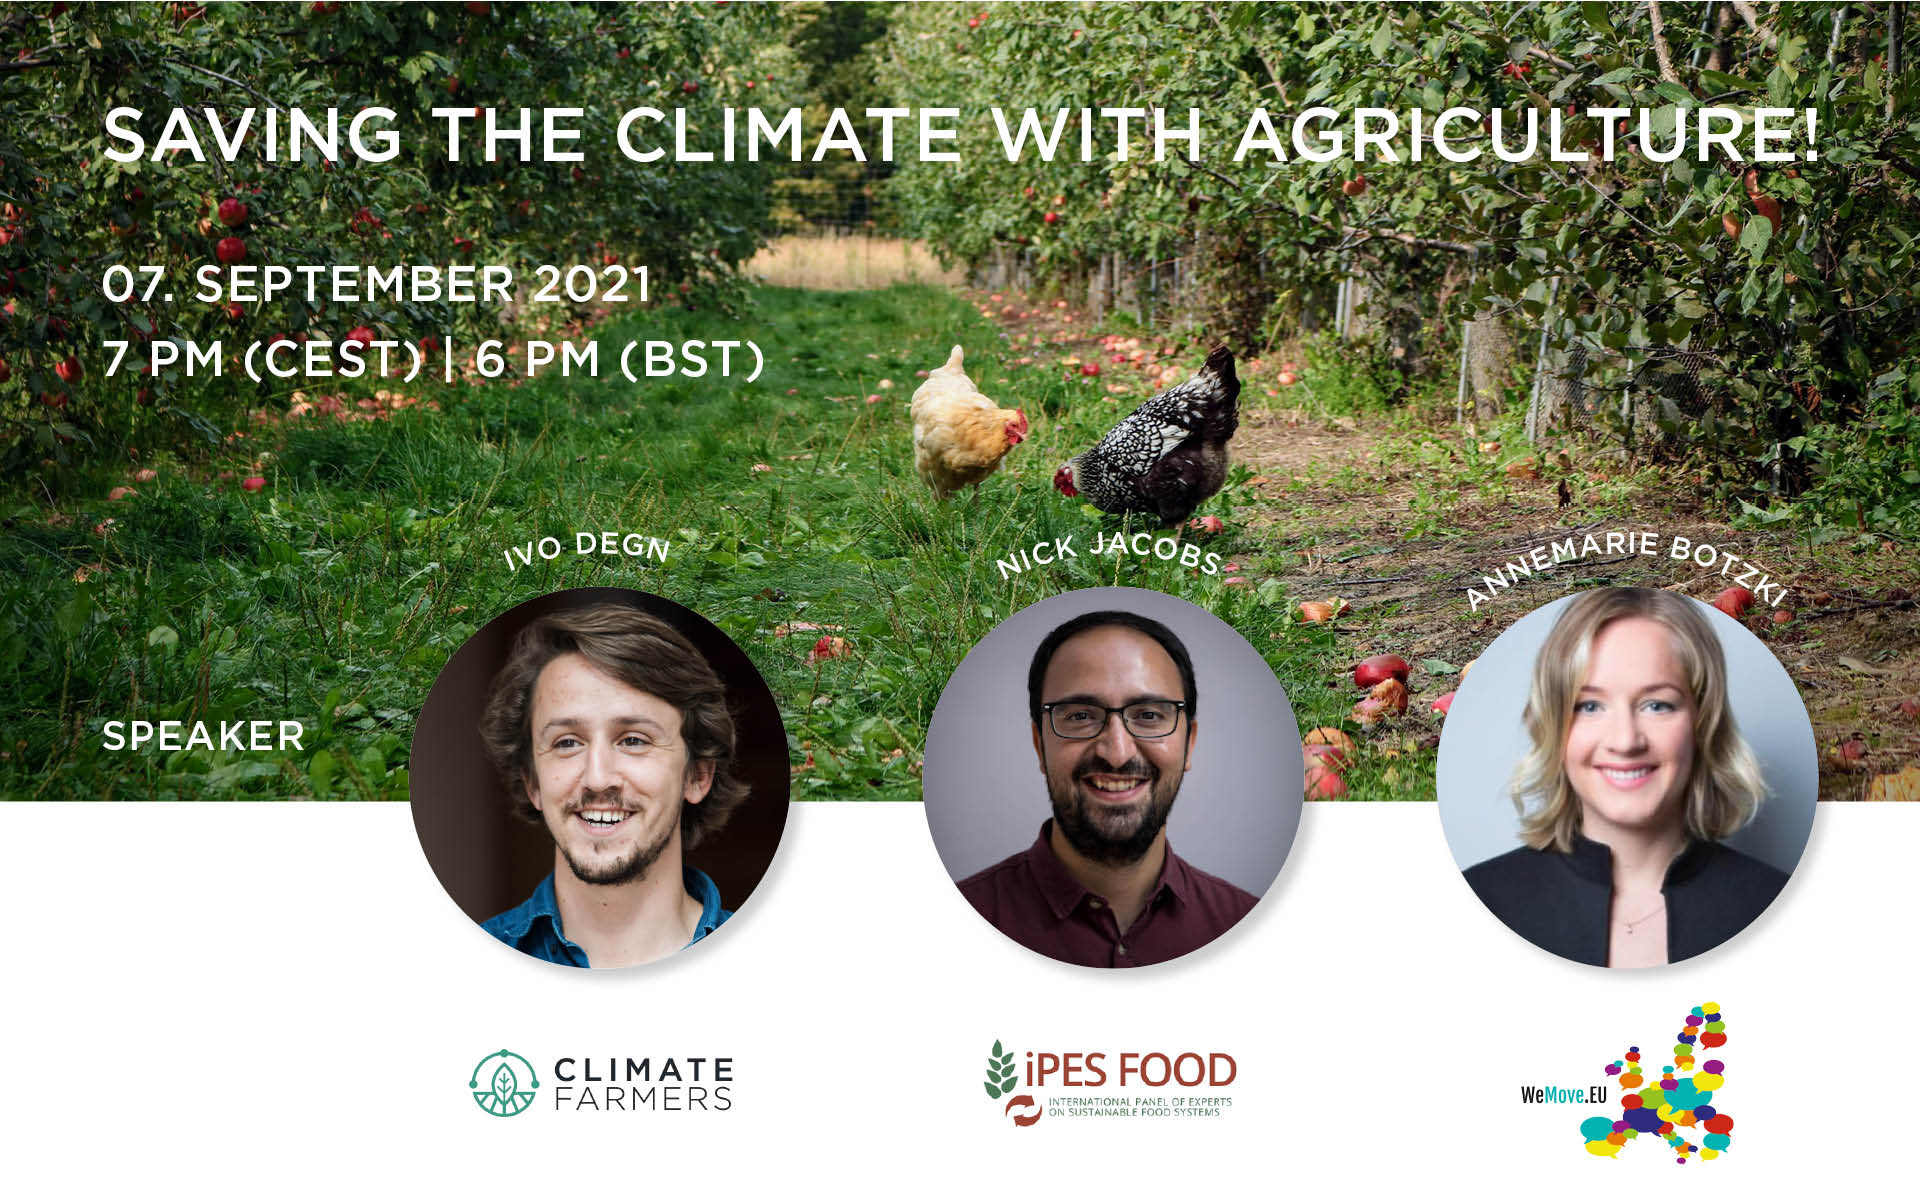 Banner image for event: Saving the climate with agriculture